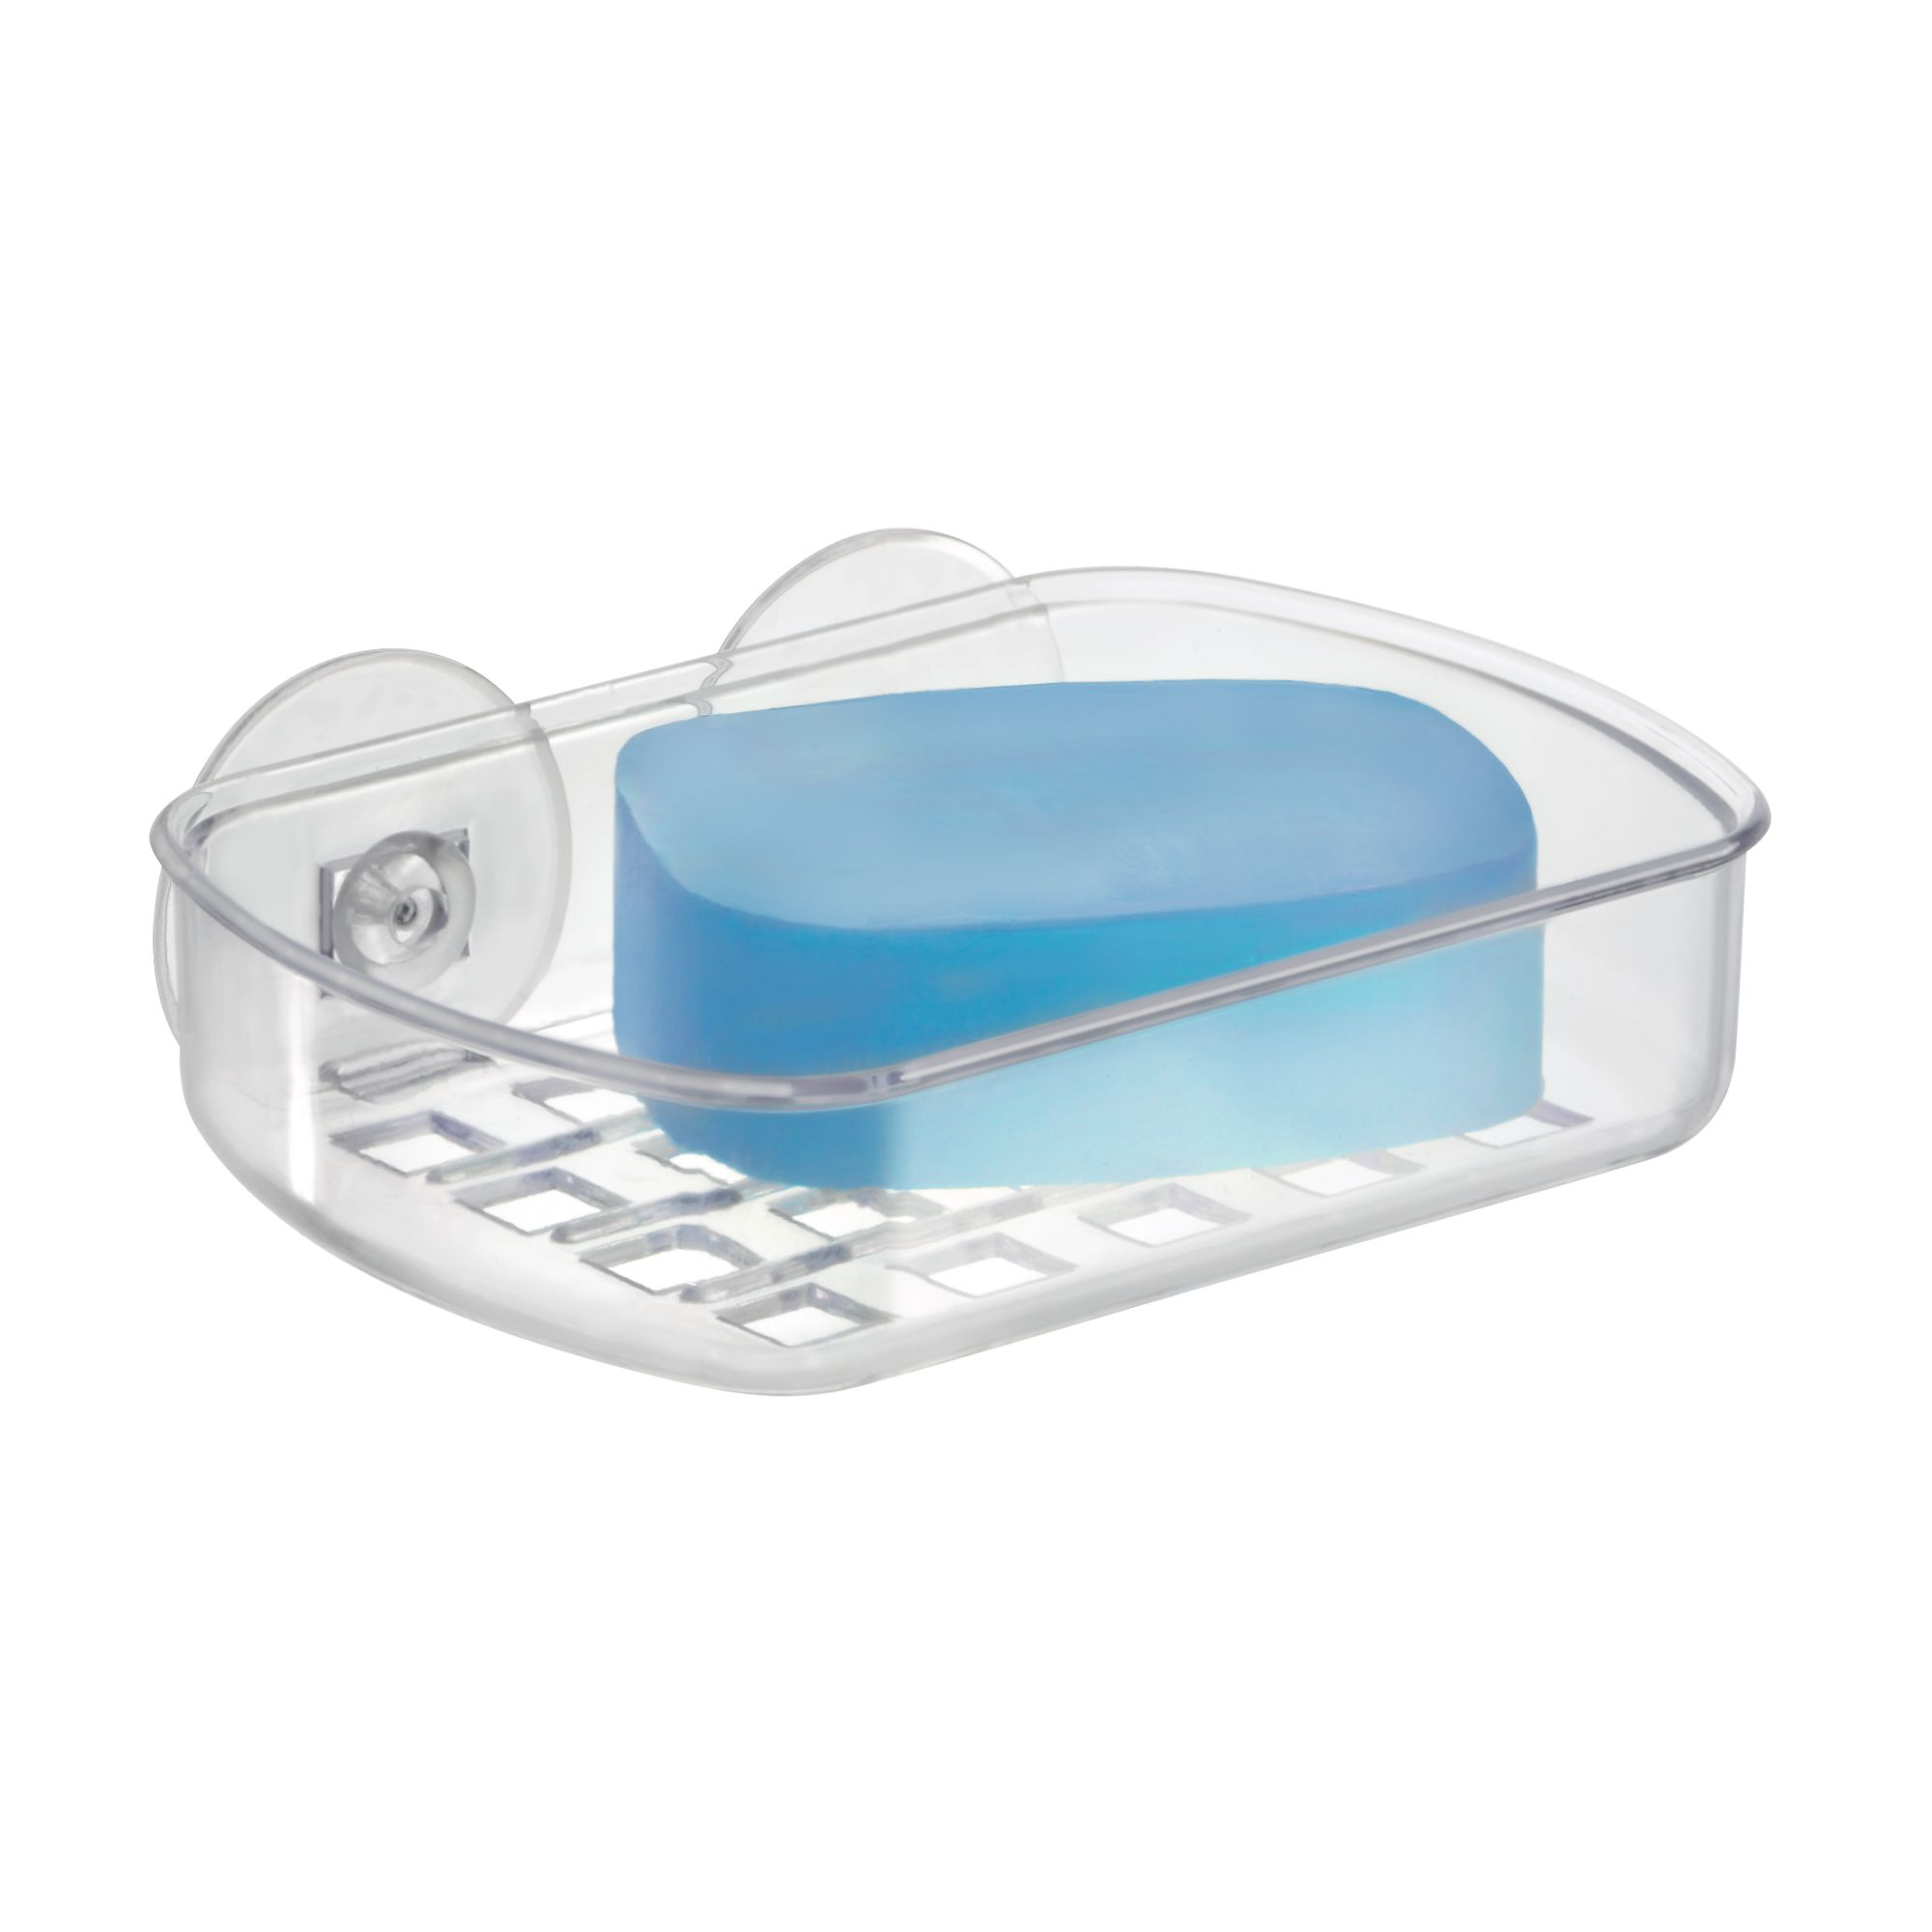 Mainstays Suction Soap Dish, Clear - Walmart.com